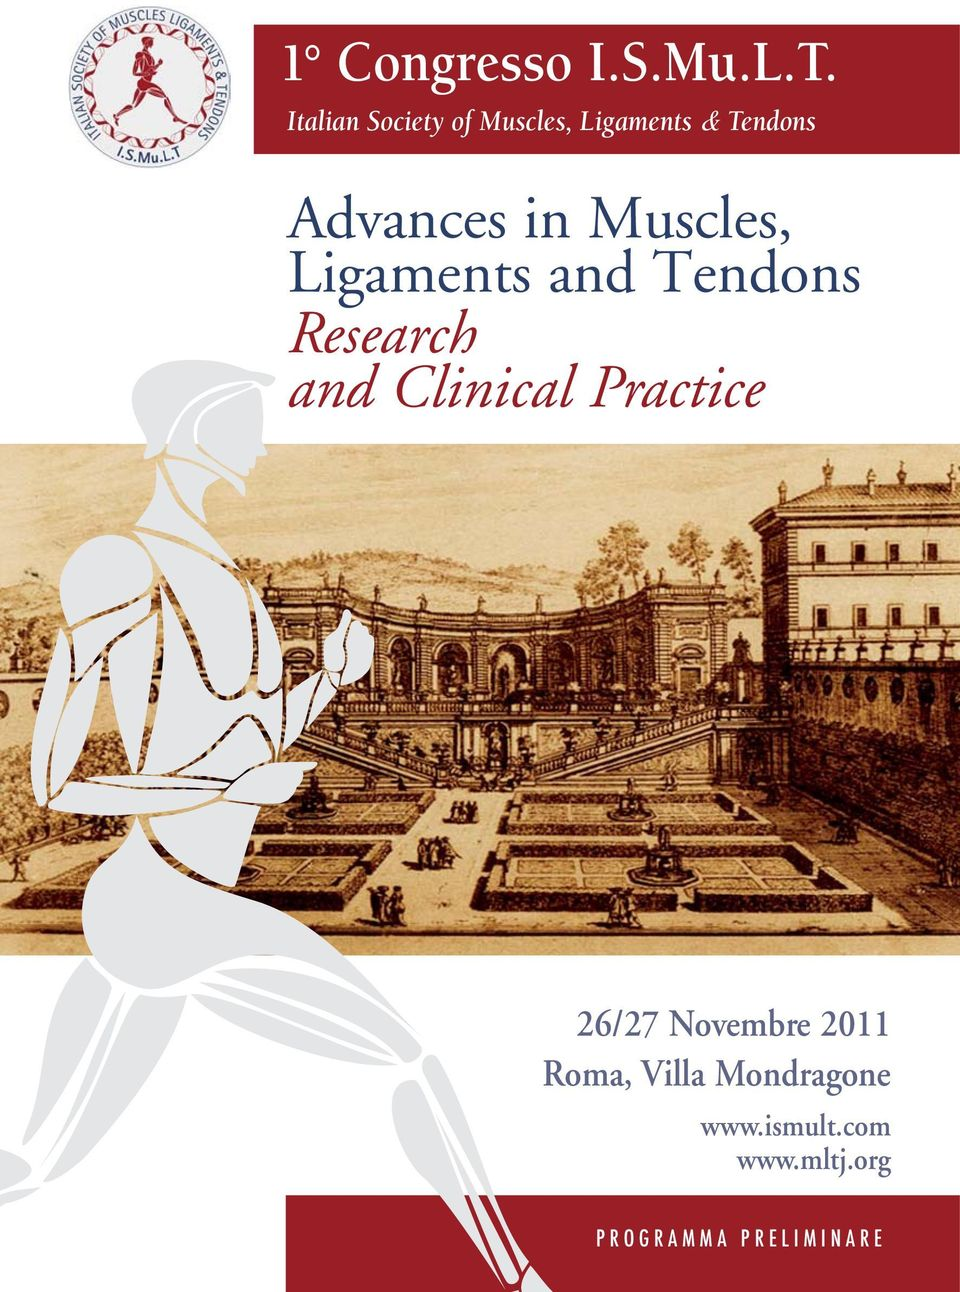 Muscles, Ligaments and Tendons Research and Clinical